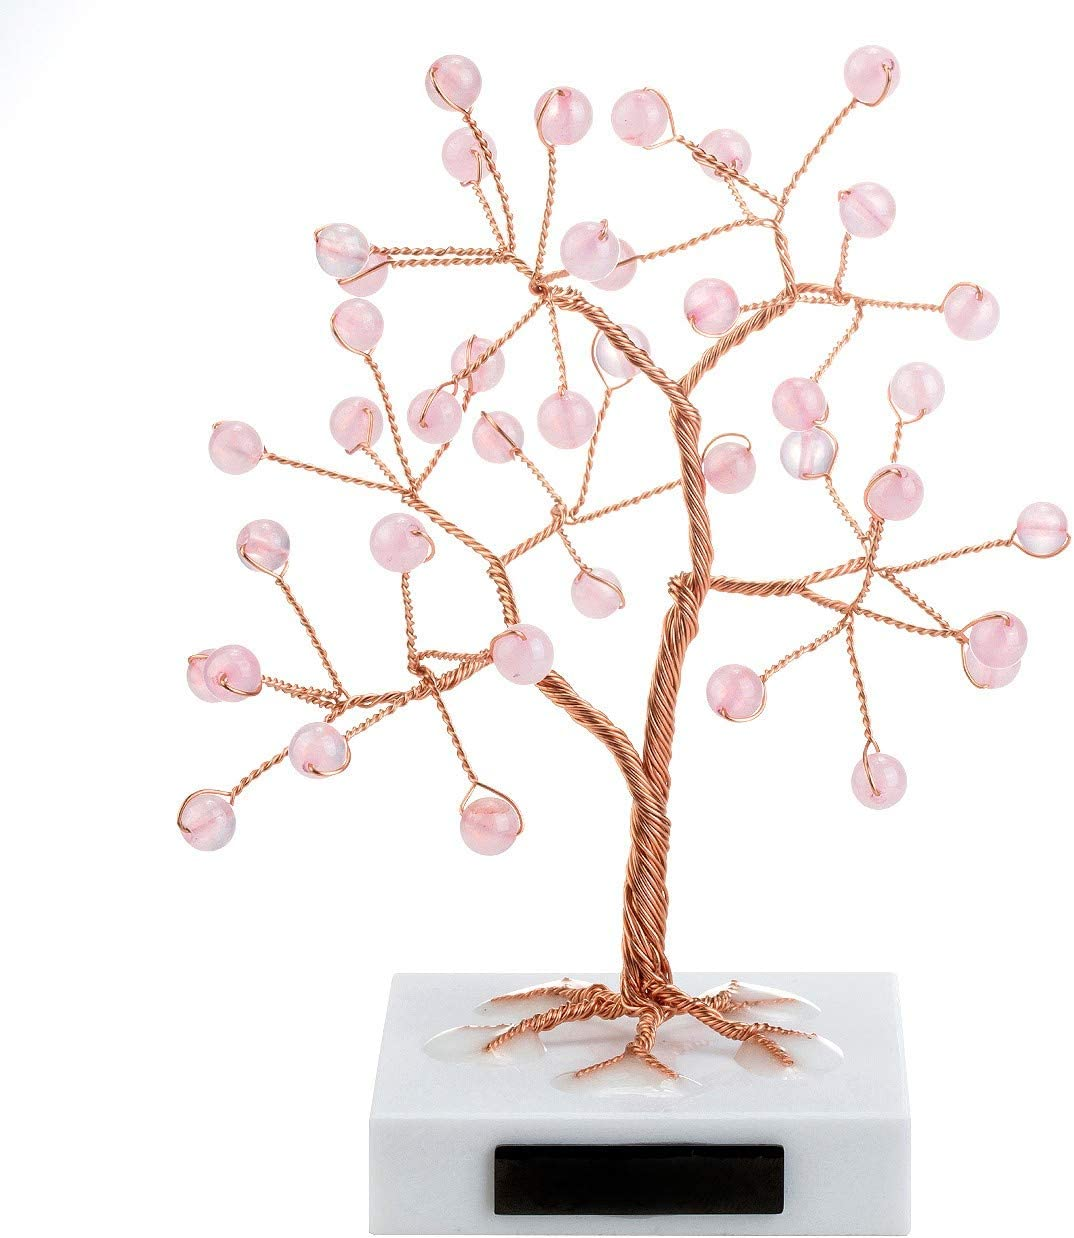 Top Plaza Reiki Healing Crystals Rose Quartz Bead Copper Money Tree Wrapped On Marble Base Feng Shui Luck Figurine Art Decor for Home Office Living Room Mini Sized